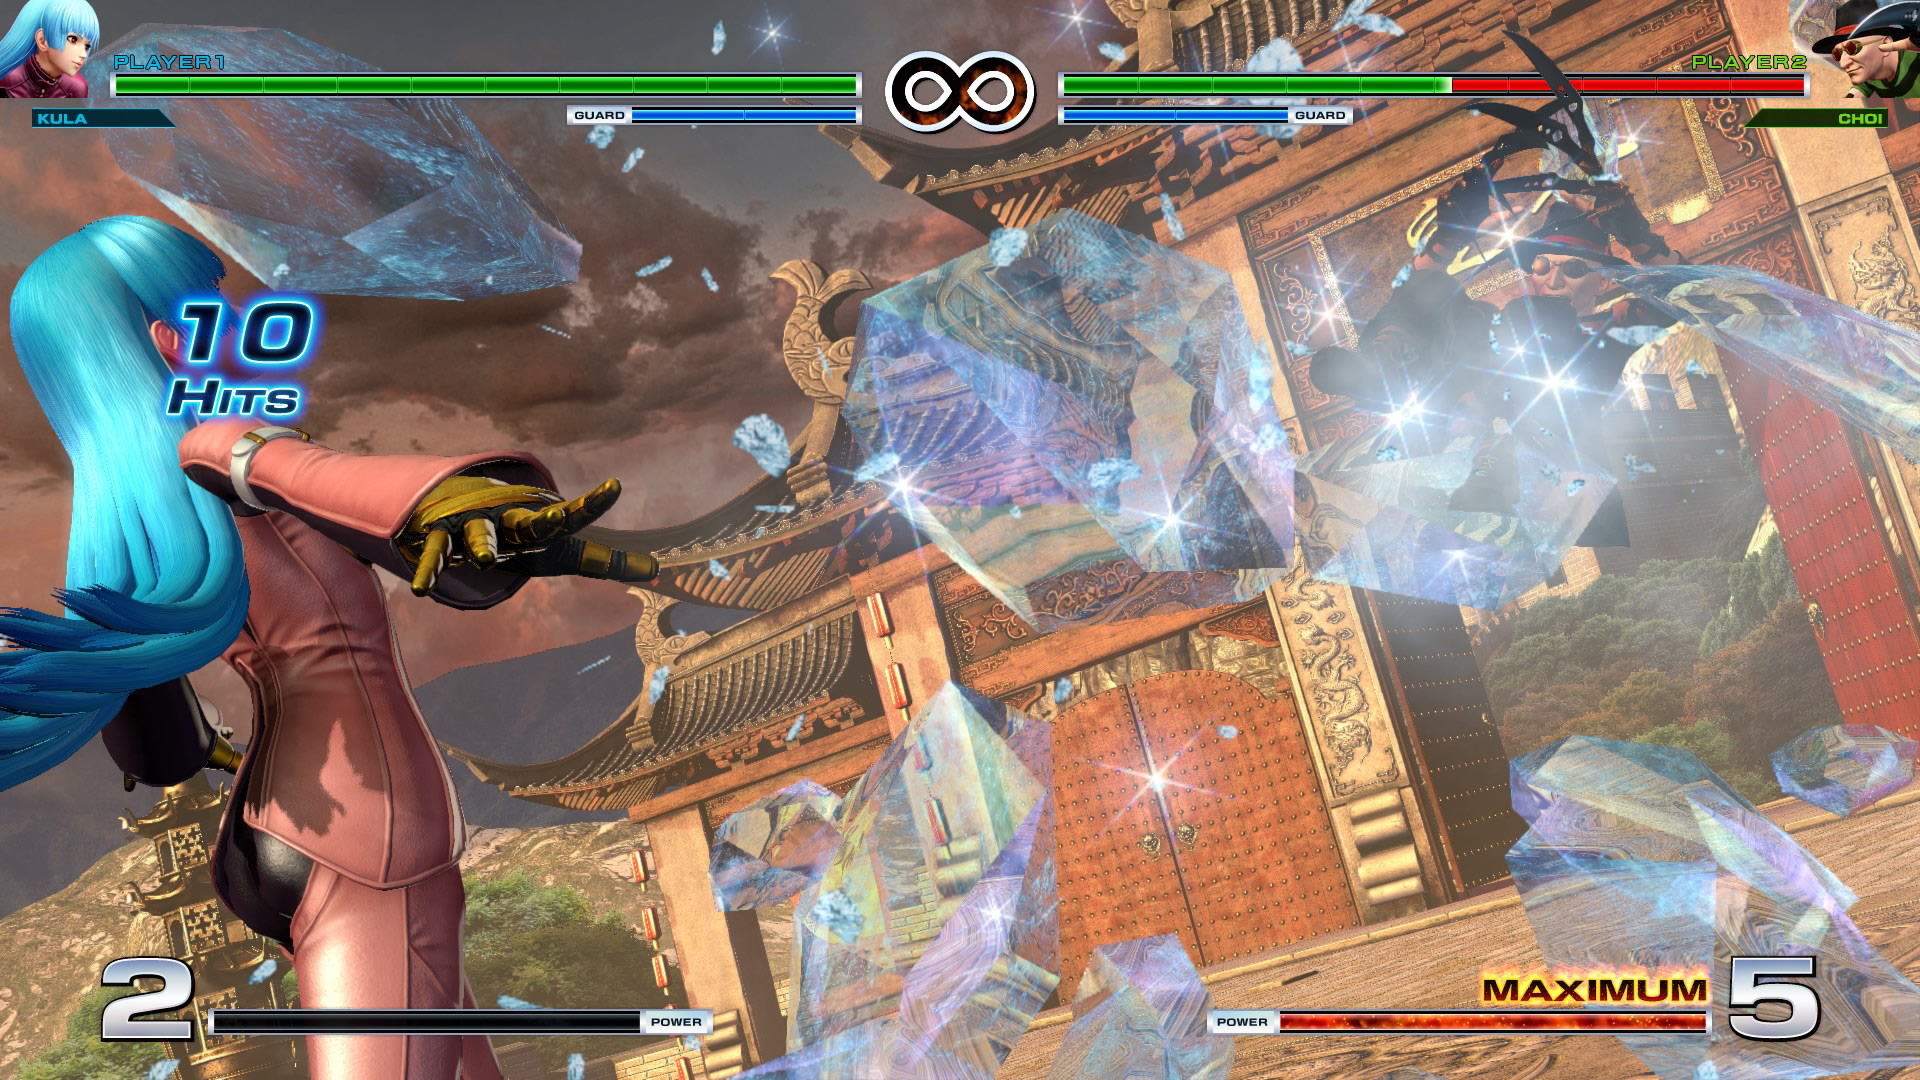 King of Fighters 14 1.10 graphics update 55 out of 60 image gallery